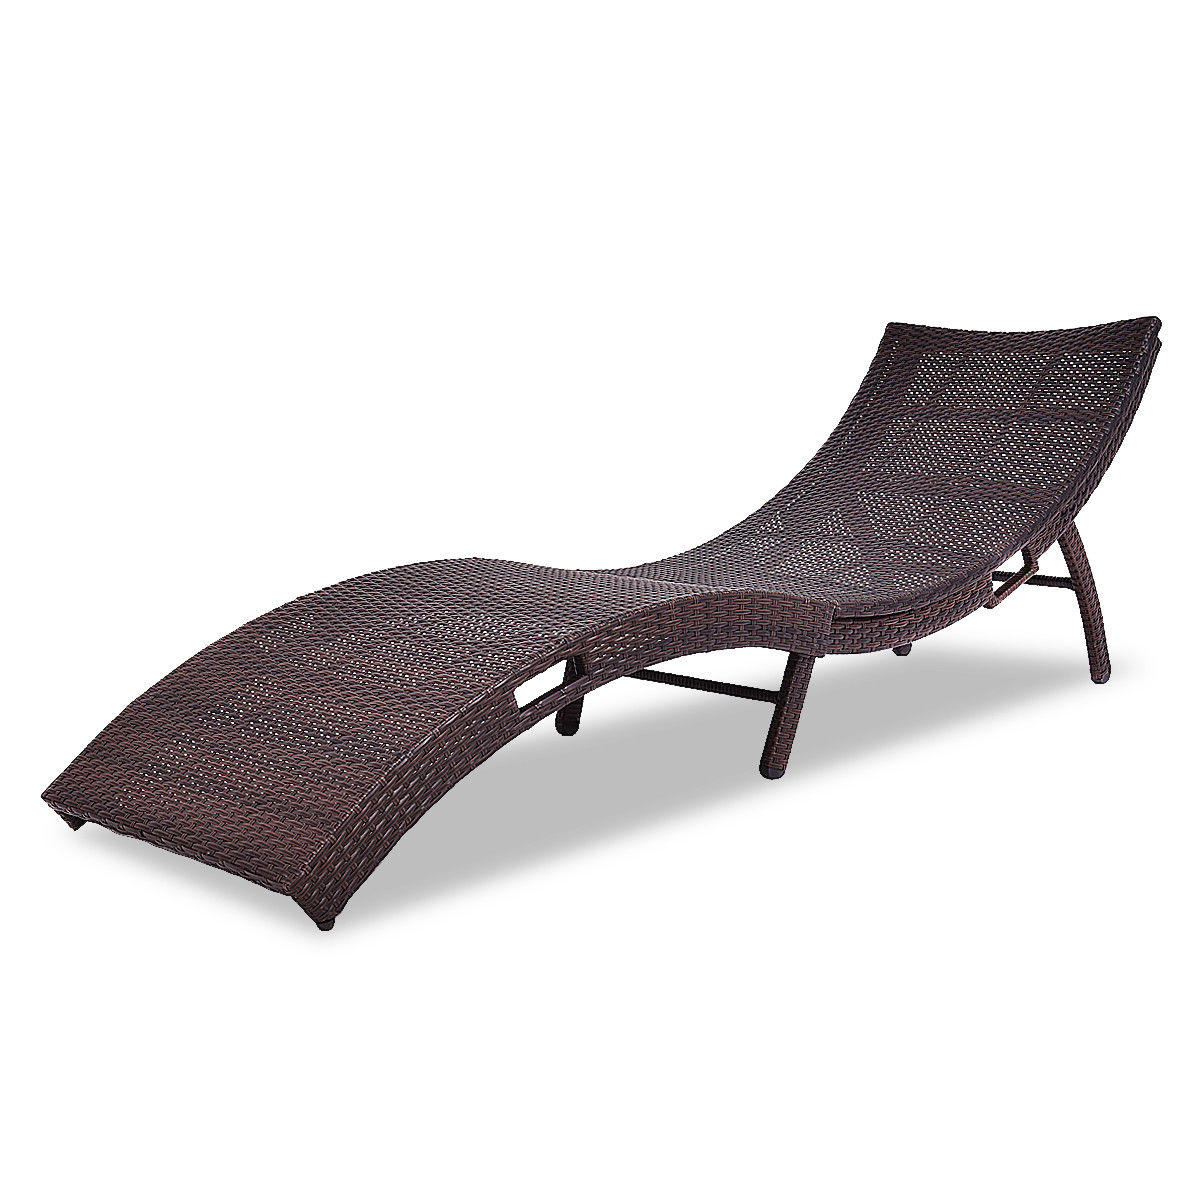 Costway Mix Brown Folding Patio Rattan Chaise Lounge Chair Outdoor  Furniture Pool Side For Most Recently Released Brown Folding Patio Chaise Lounger Chairs (View 10 of 25)